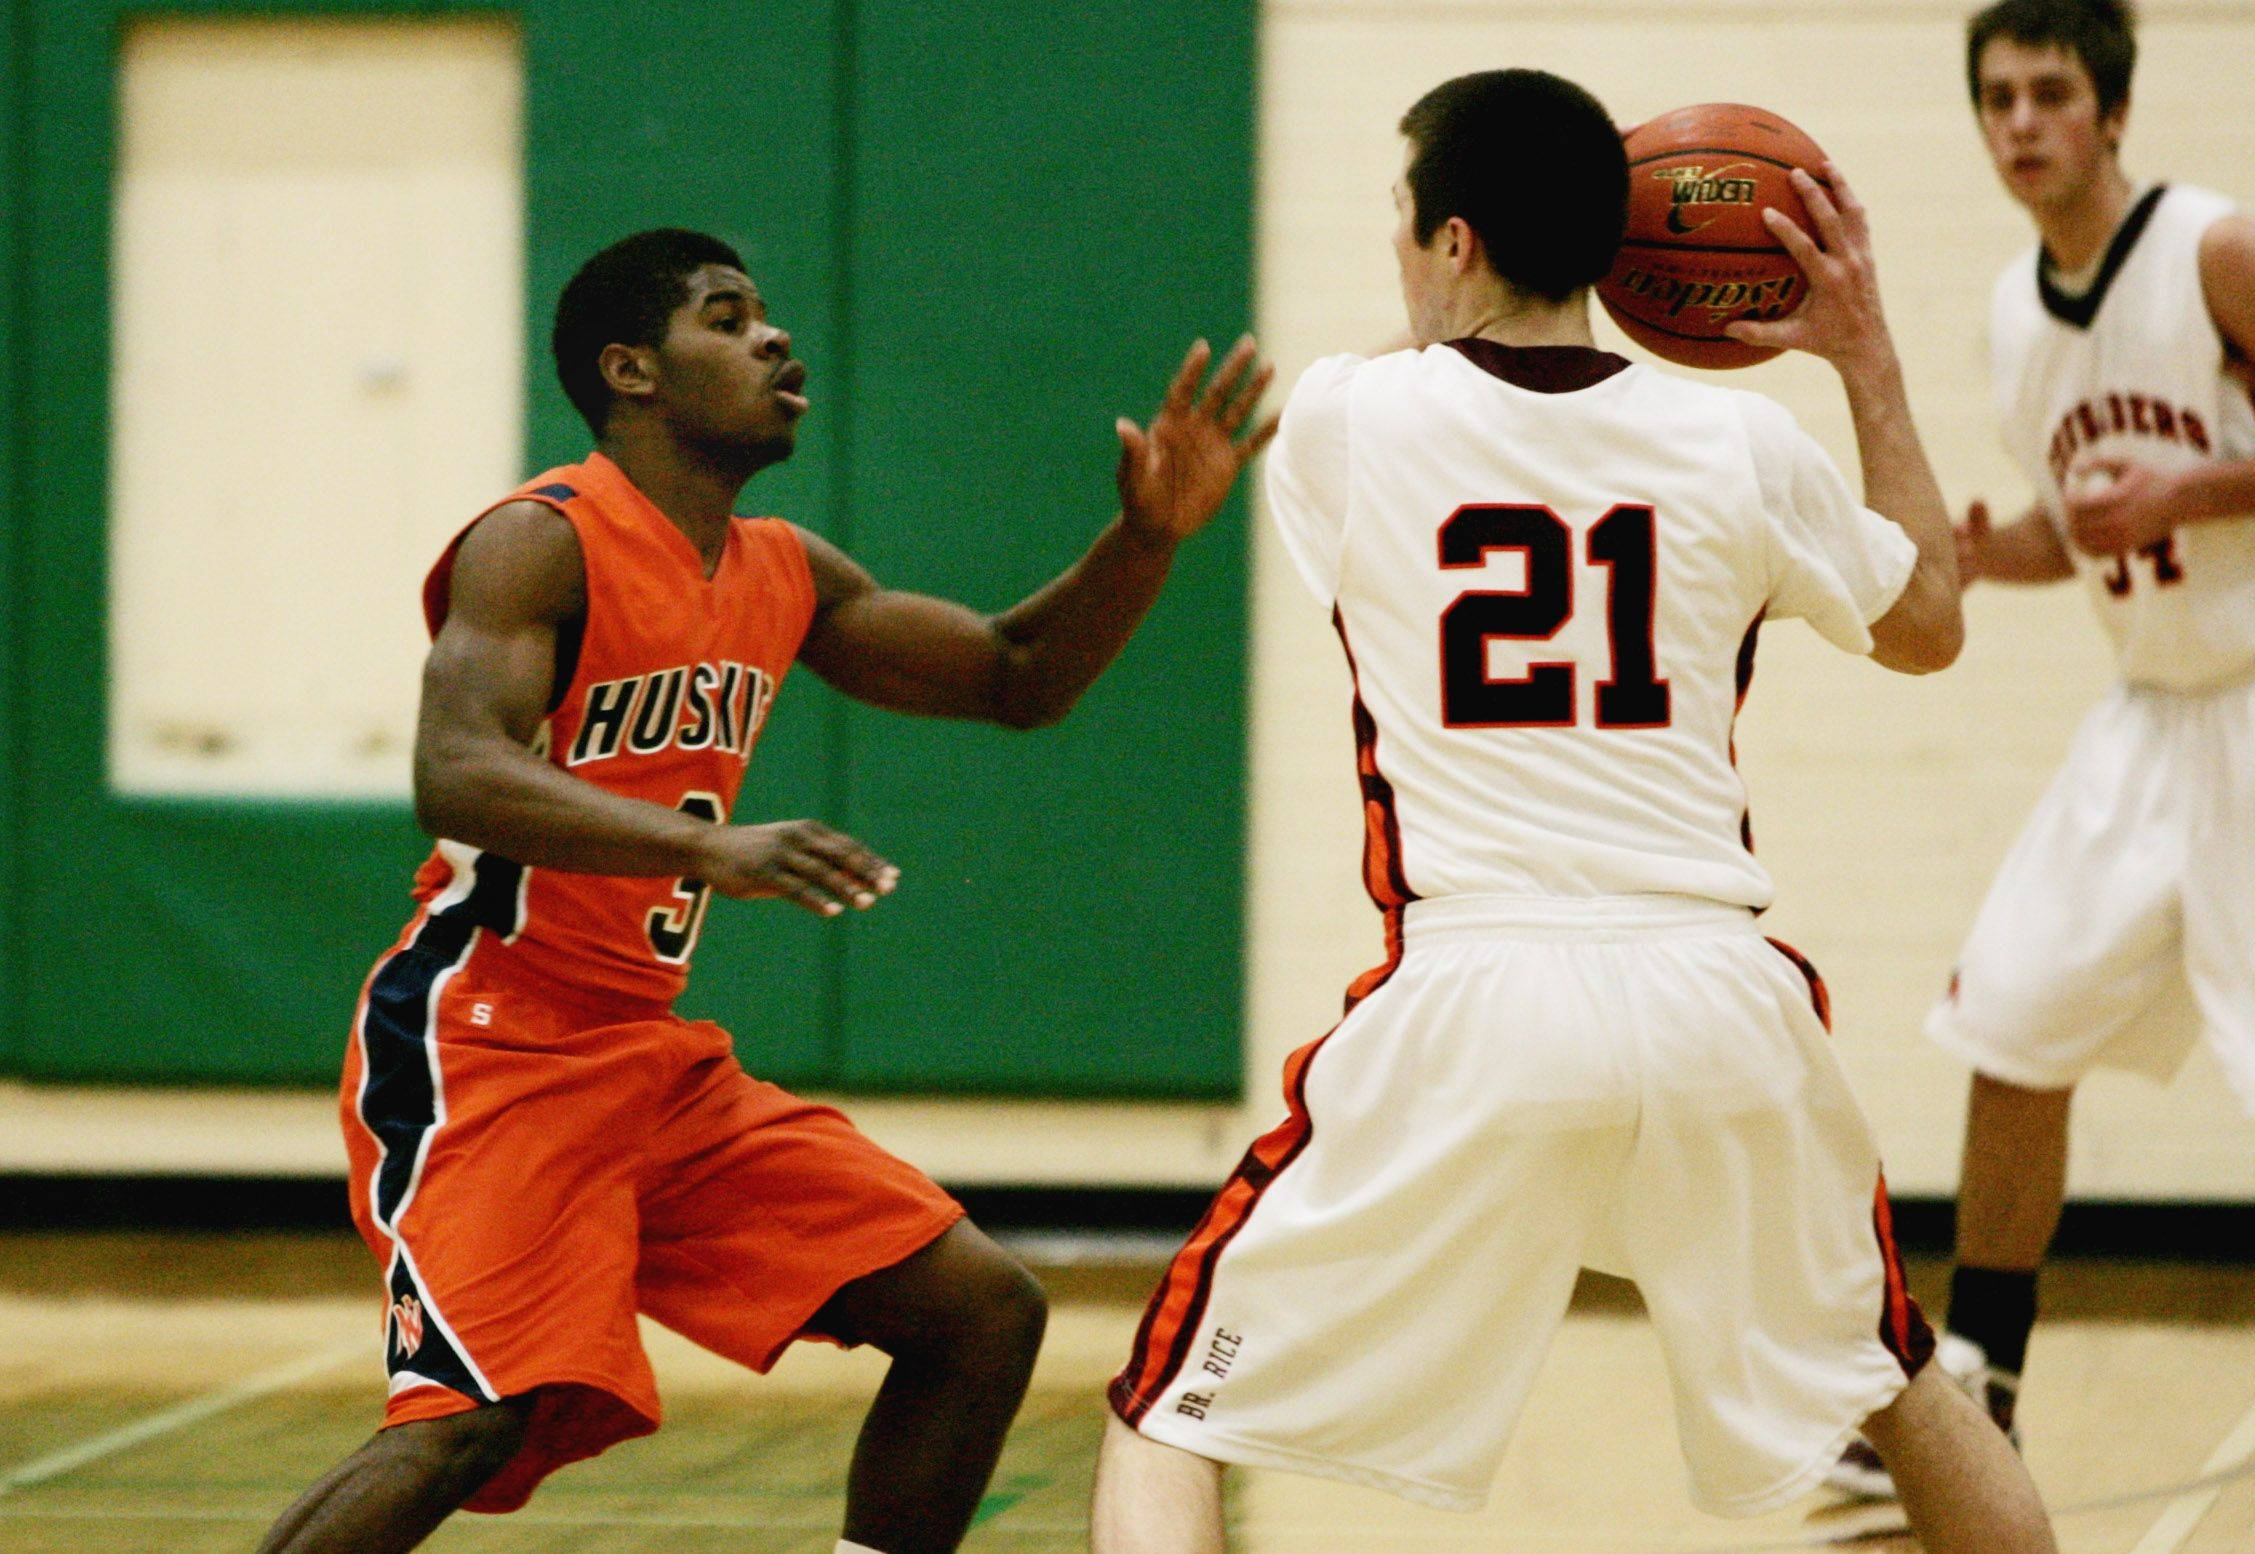 Boys basketball. Naperville North vs. Brother Rice boys basketball at York High School in Elmhurst.